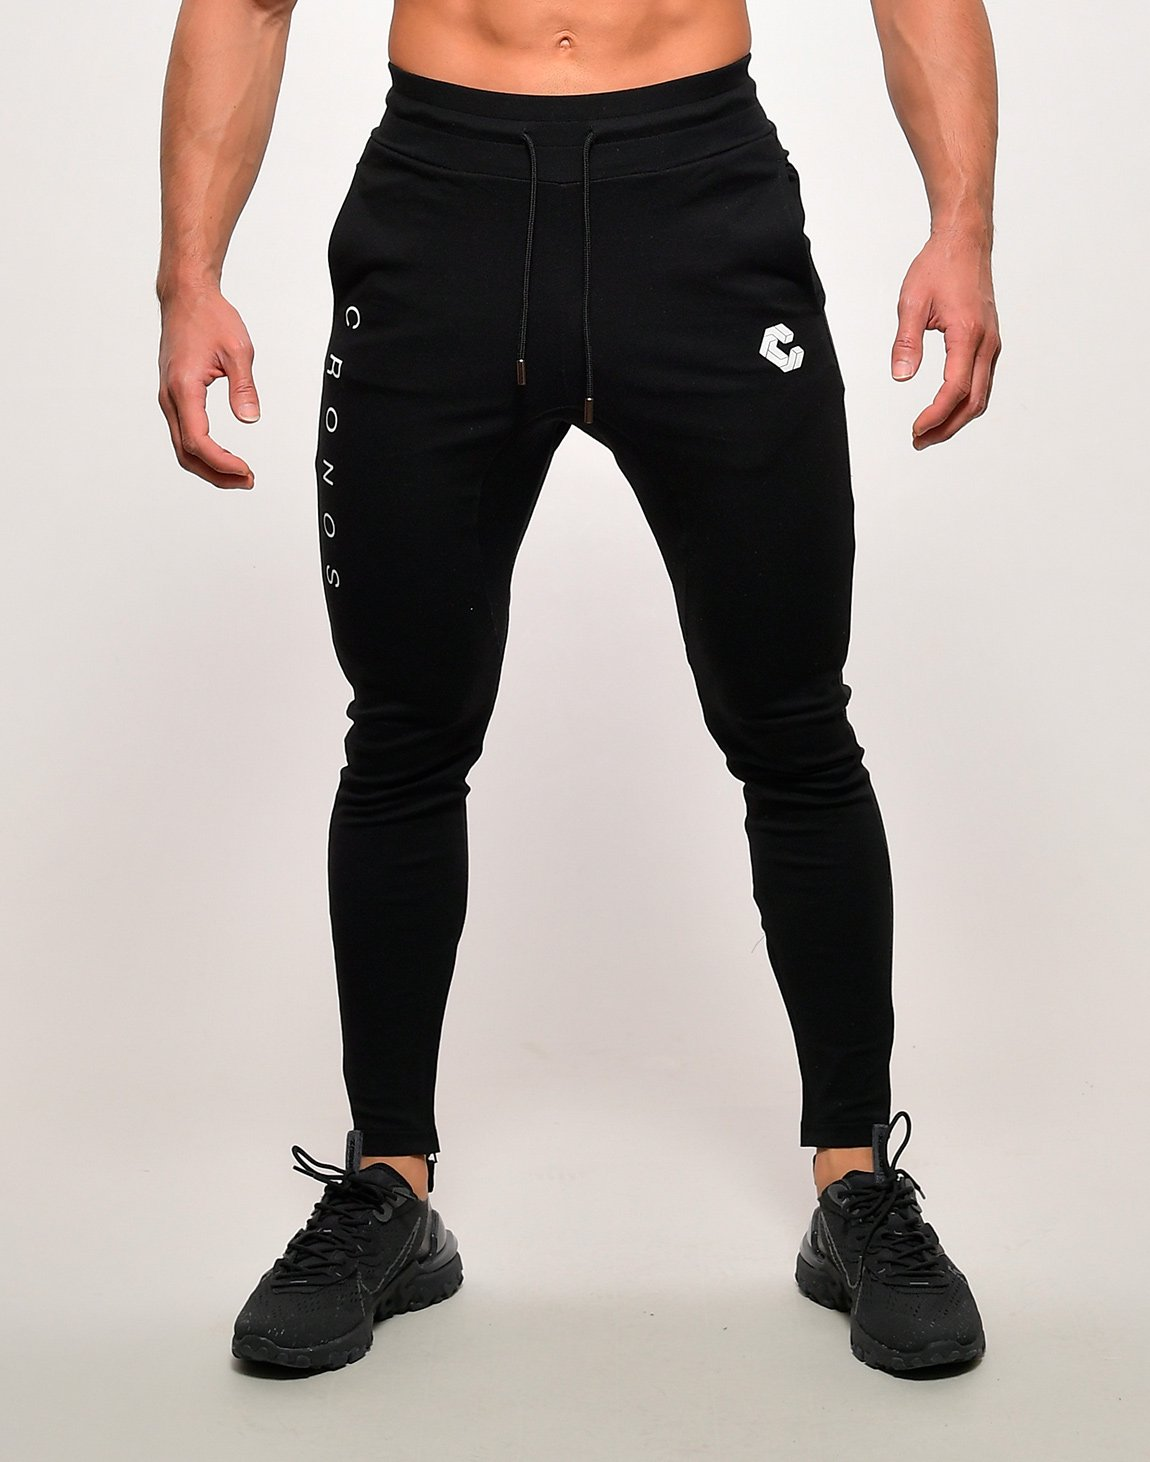 <img class='new_mark_img1' src='https://img.shop-pro.jp/img/new/icons1.gif' style='border:none;display:inline;margin:0px;padding:0px;width:auto;' />CRONOS SIDE FONT PANTS【BLACK】